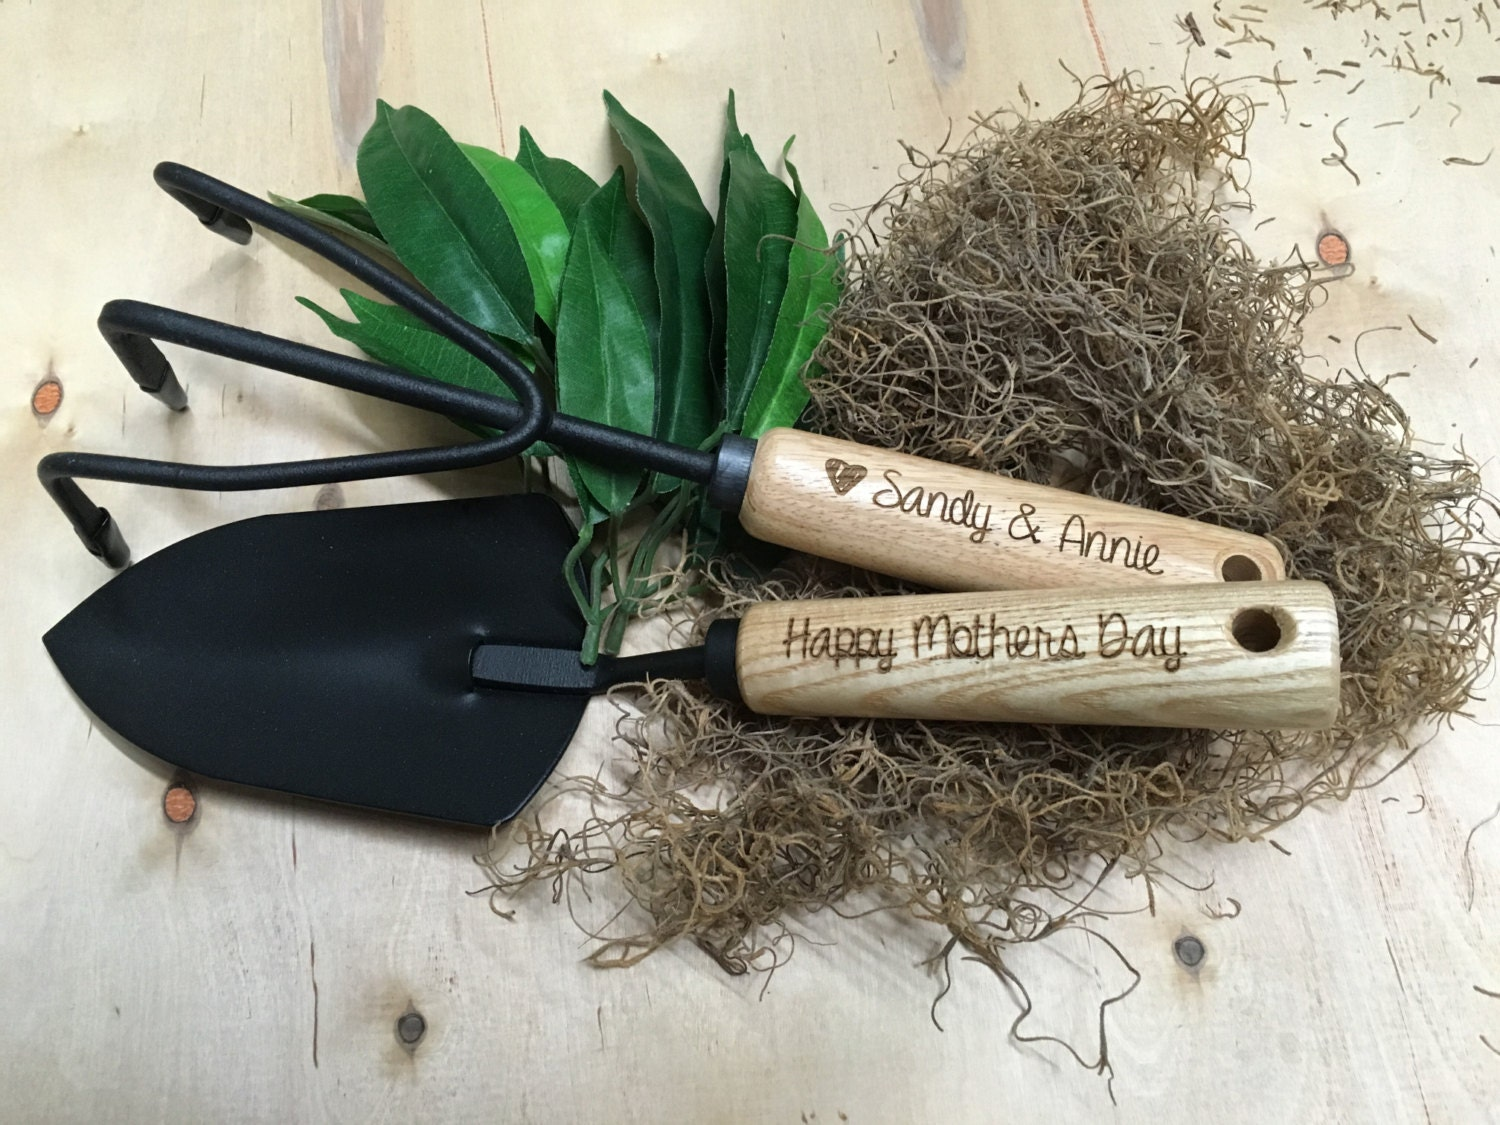 Personalized Garden Tools | Unique Gift for Her | Gift for Grandma | Gardening Gift | Gardening Tools | Engraved Hand Trowel & Cultivator